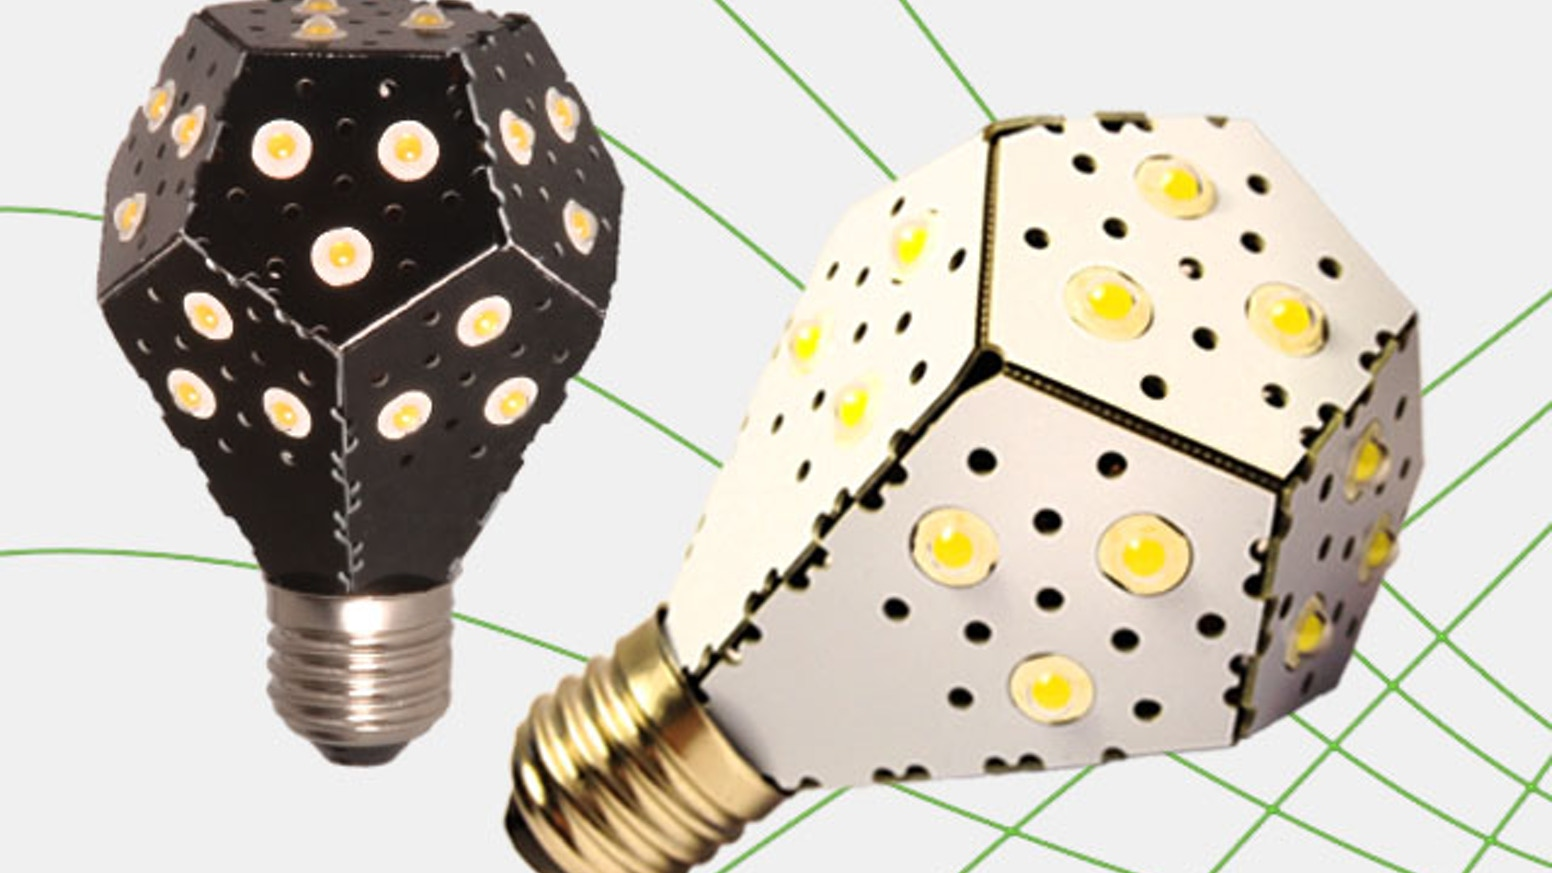 A new LED lightbulb that is the most energy efficient on the planet. The Nanoleaf One takes energy efficient lighting to the next level.